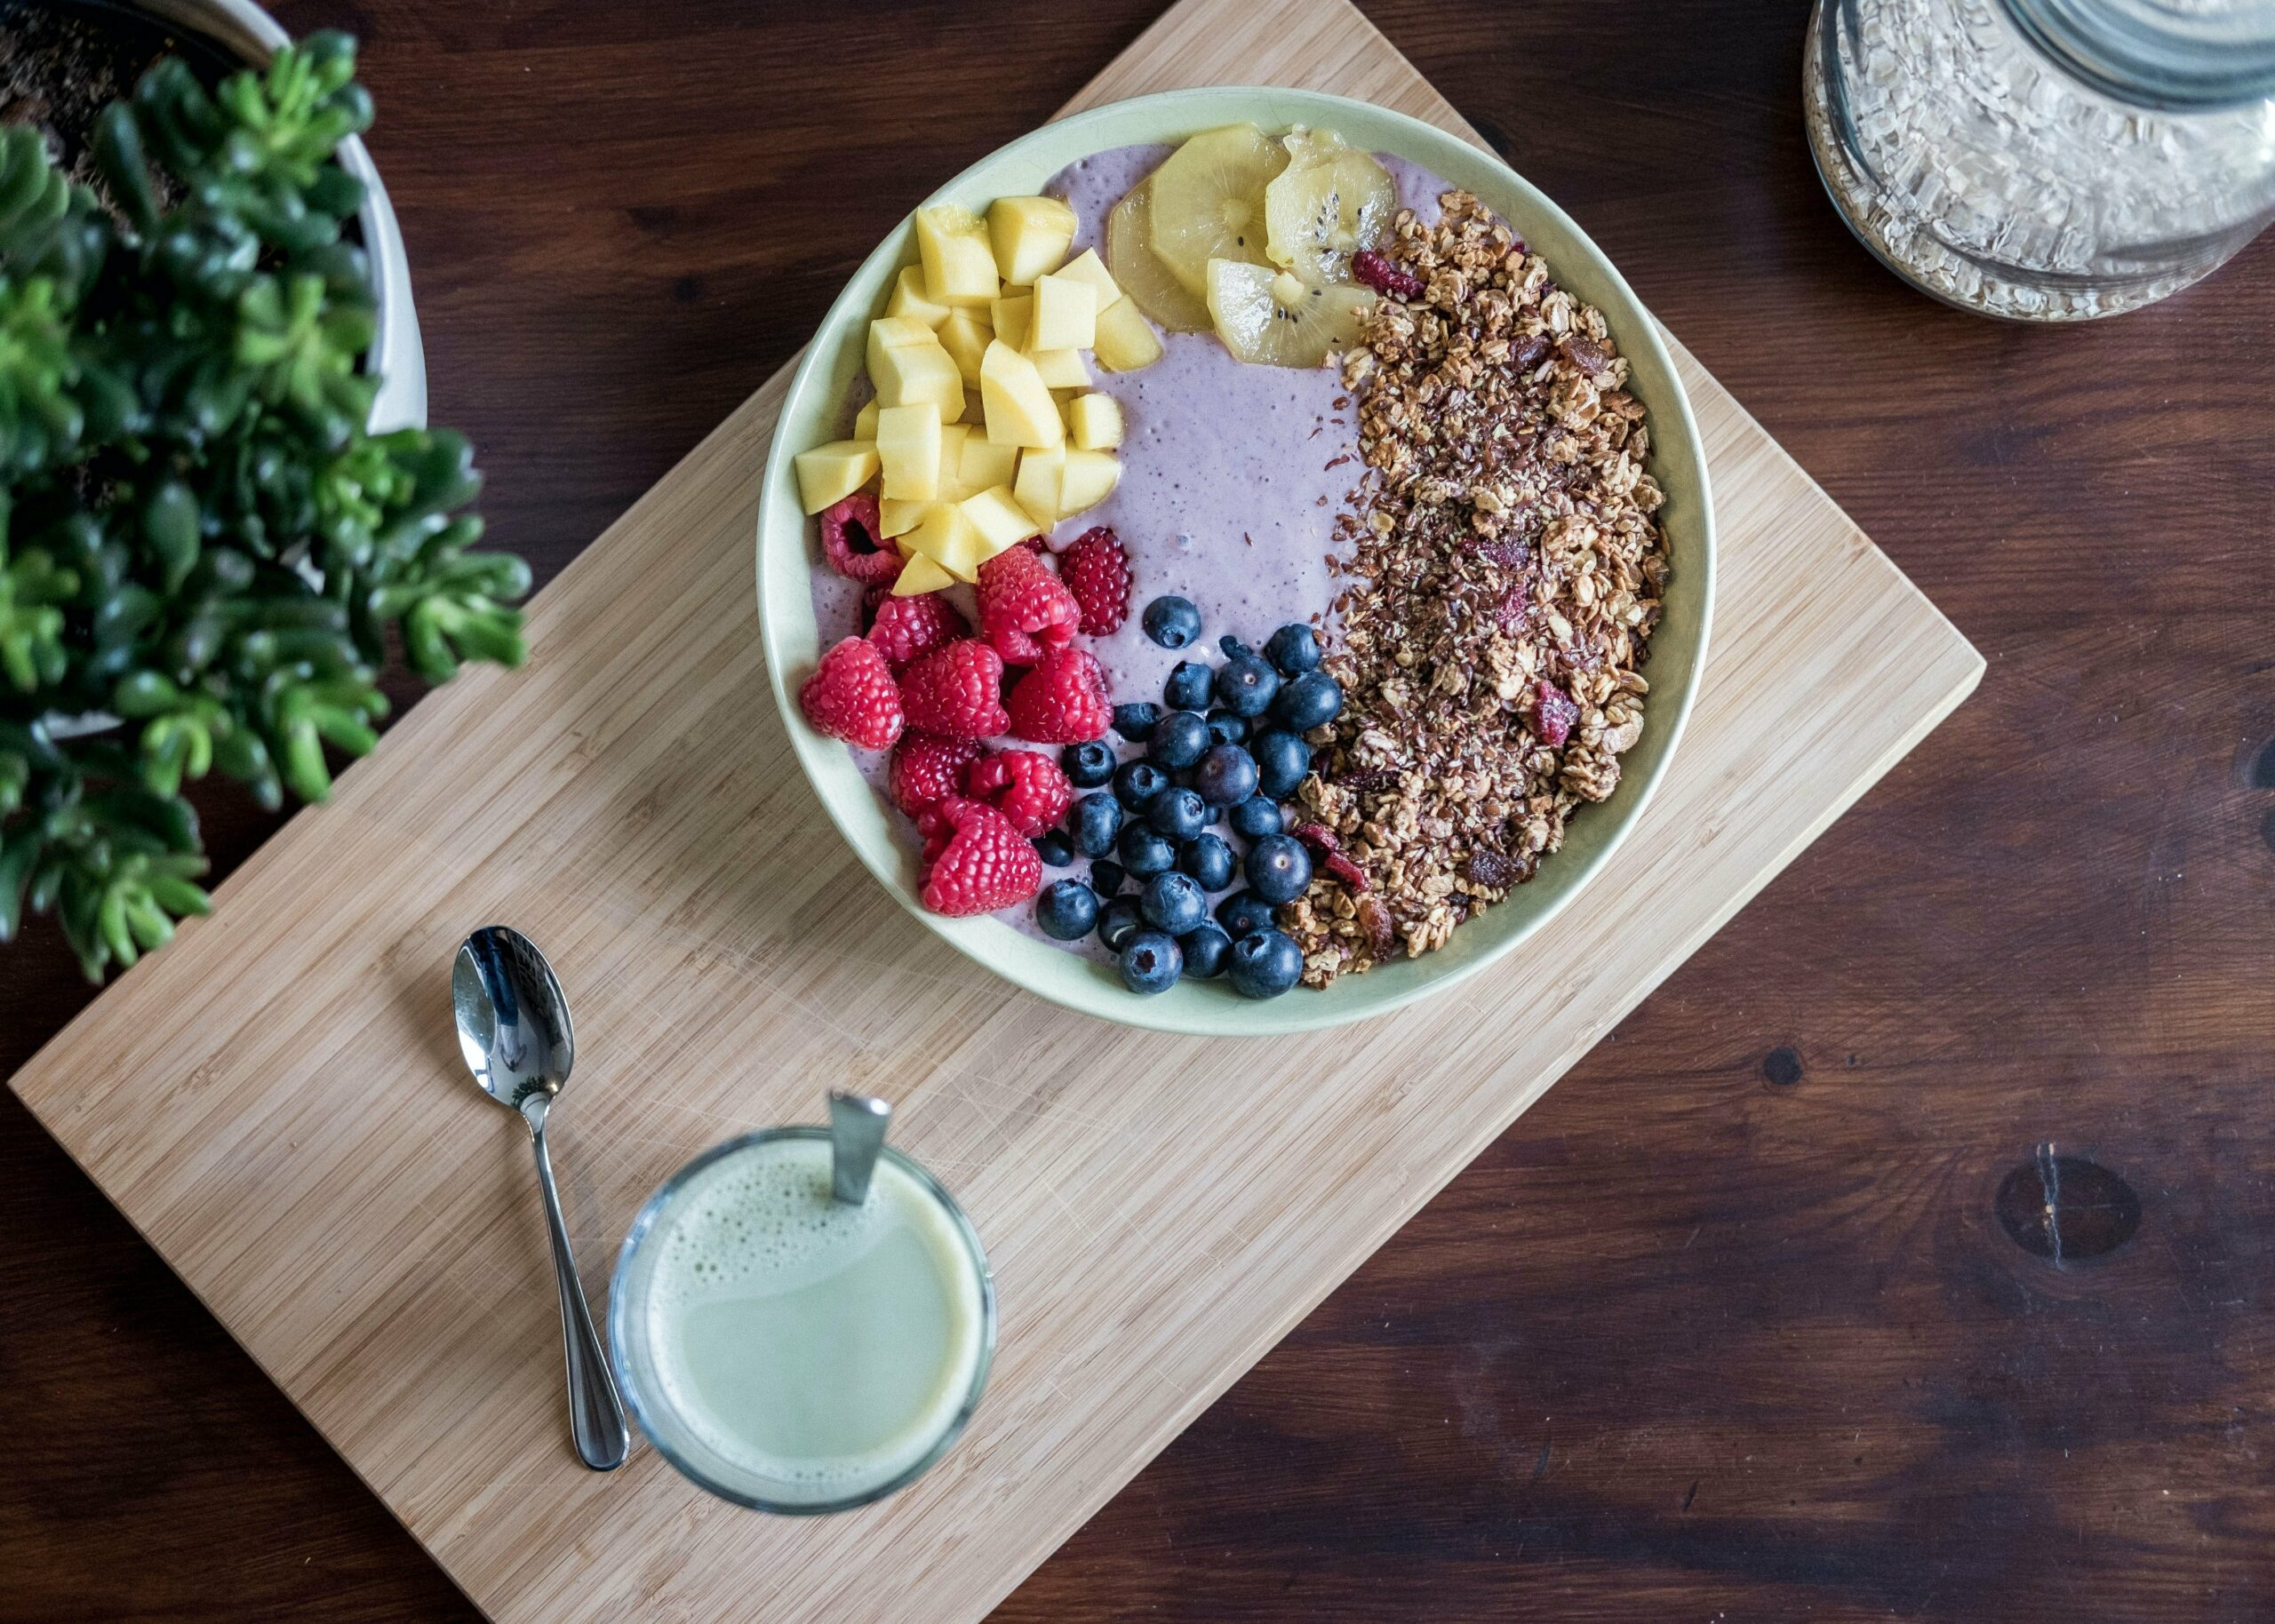 5-tips-to-get-you-started-in-healthy-food-i-choose-to-eat-healthy: